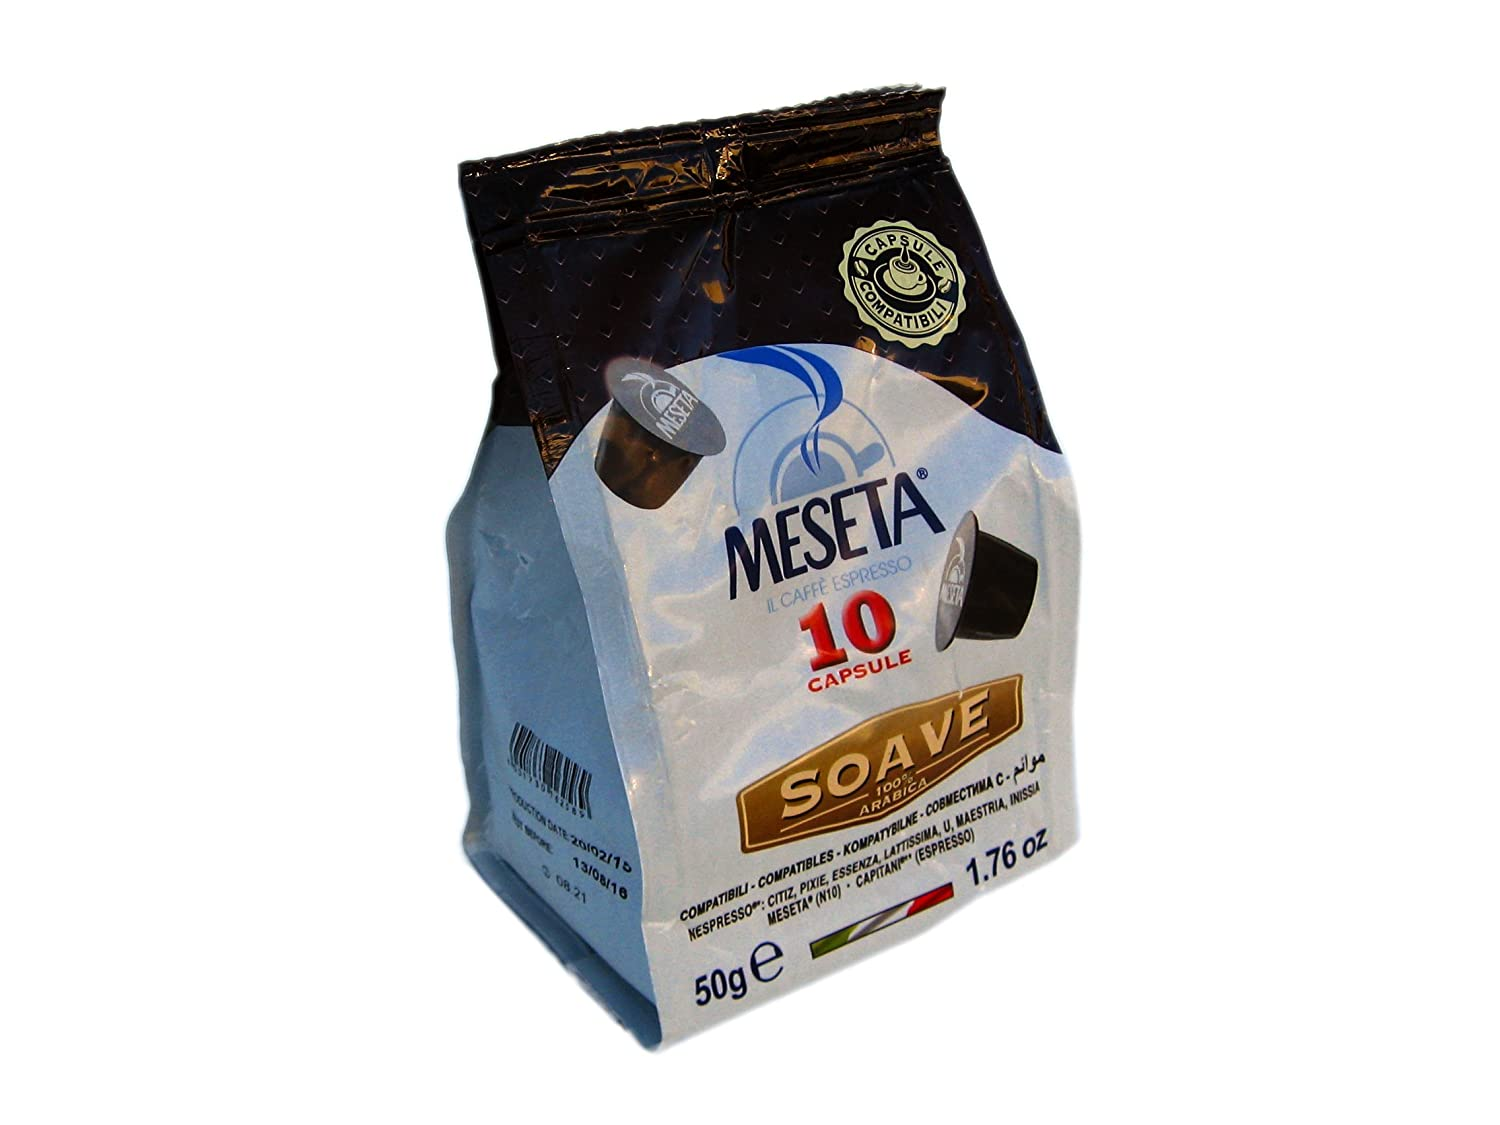 Nespresso Compatible Meseta Coffee Capsules . 80 Capsules of Gourmet 100% Arabica Coffee Espresso Compatible with Nespresso Machine.